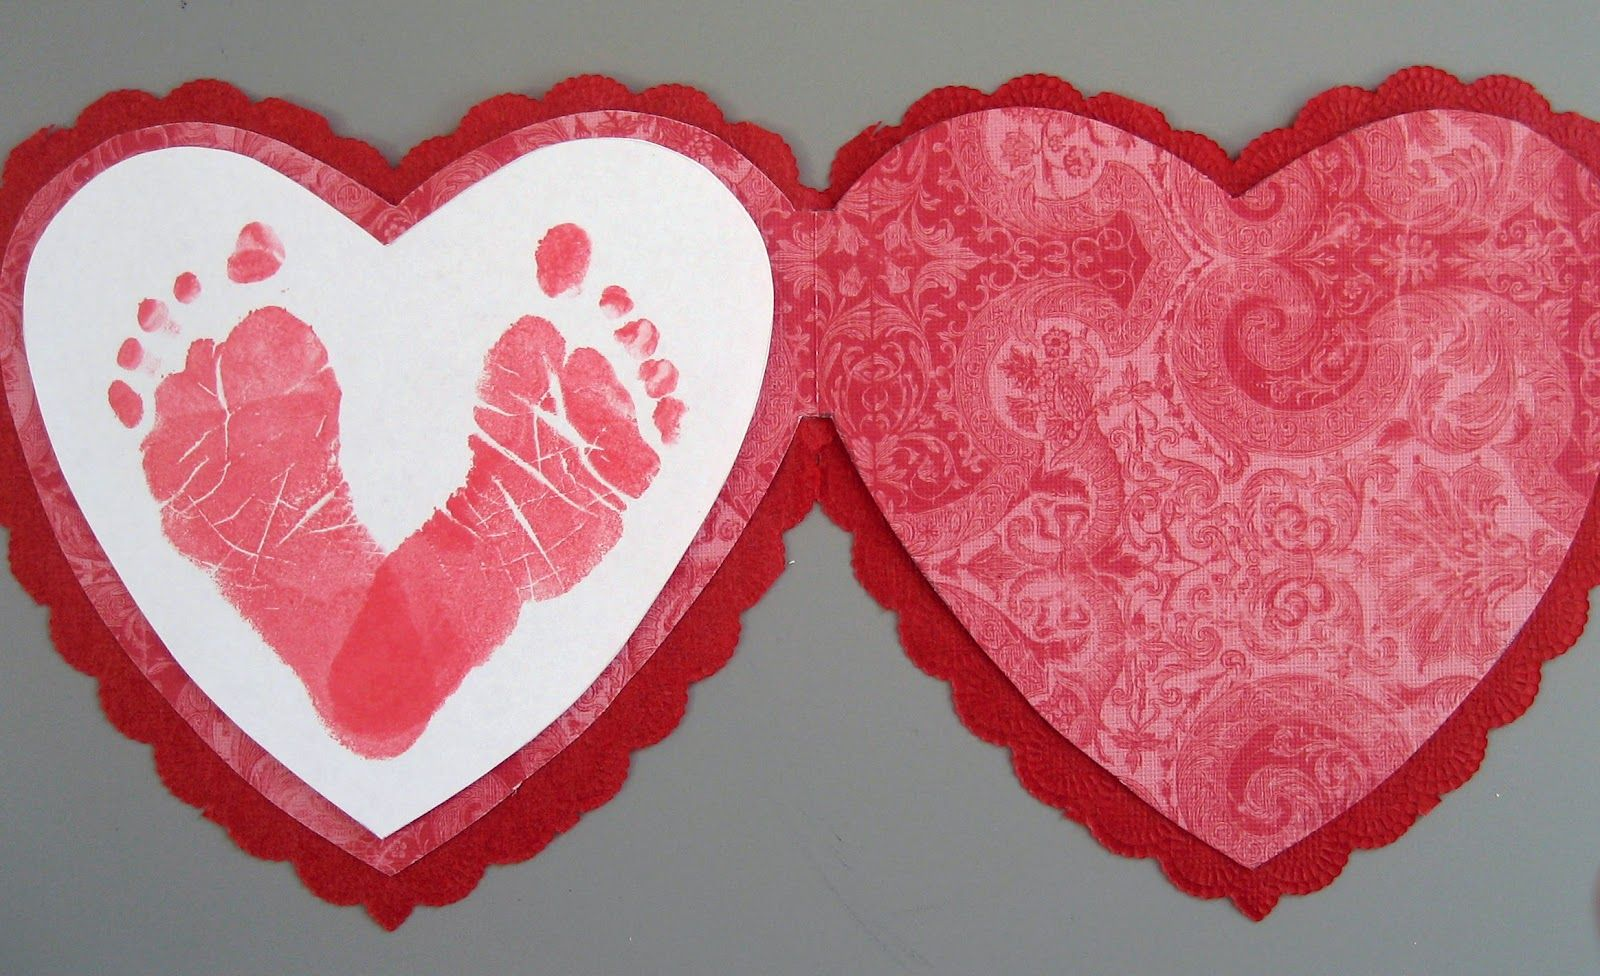 Preschool craft ideas for valentines day - 1000 Images About Krafty Kiddy Stuff On Pinterest Window Clings Card Crafts And Sand Candles